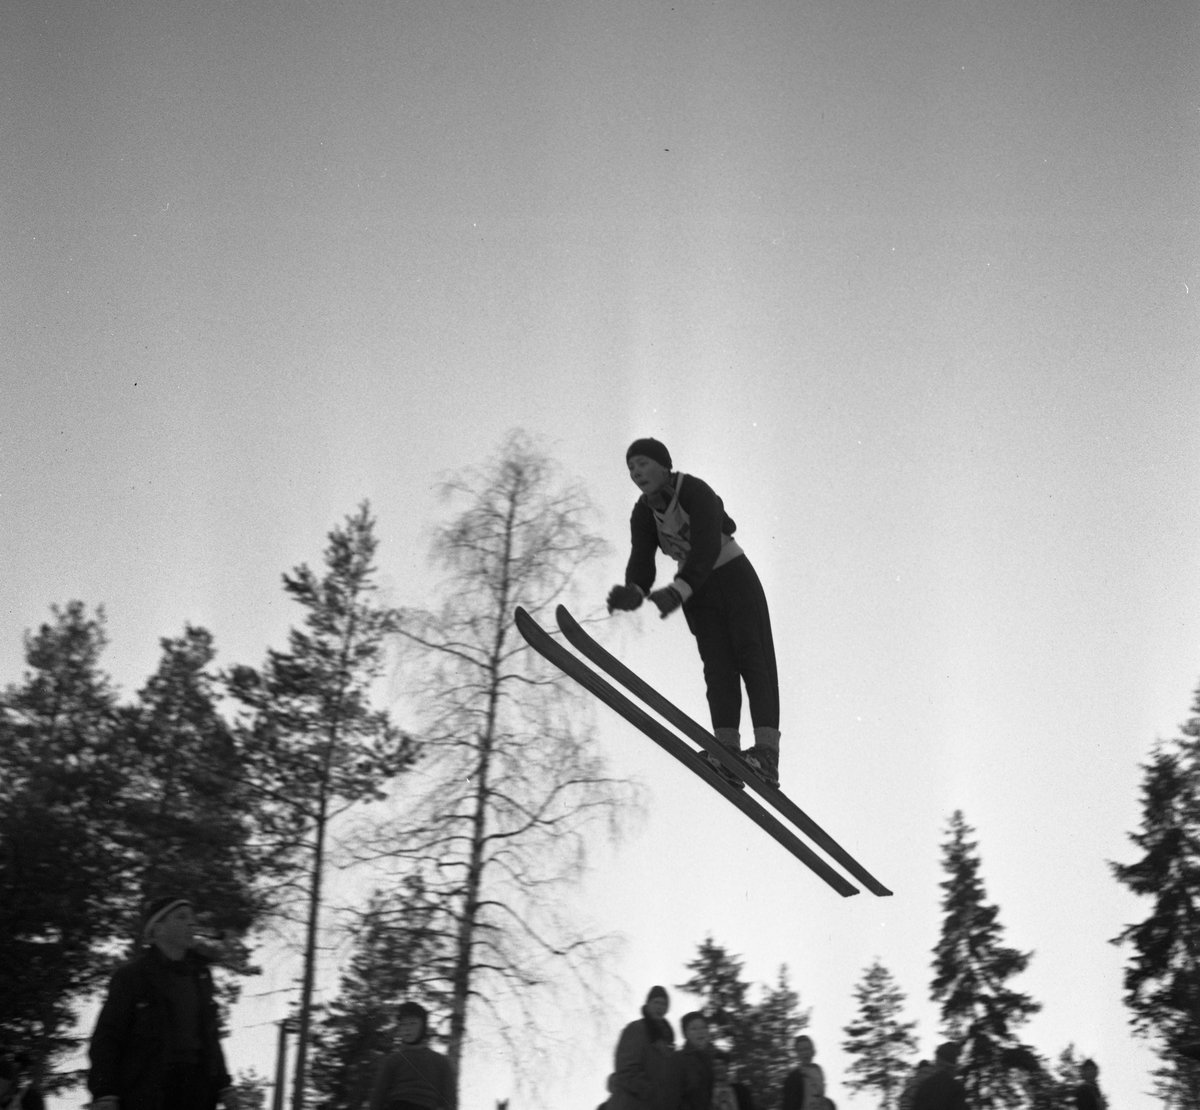 Ski jumping competiotin for young boys, Persløkka